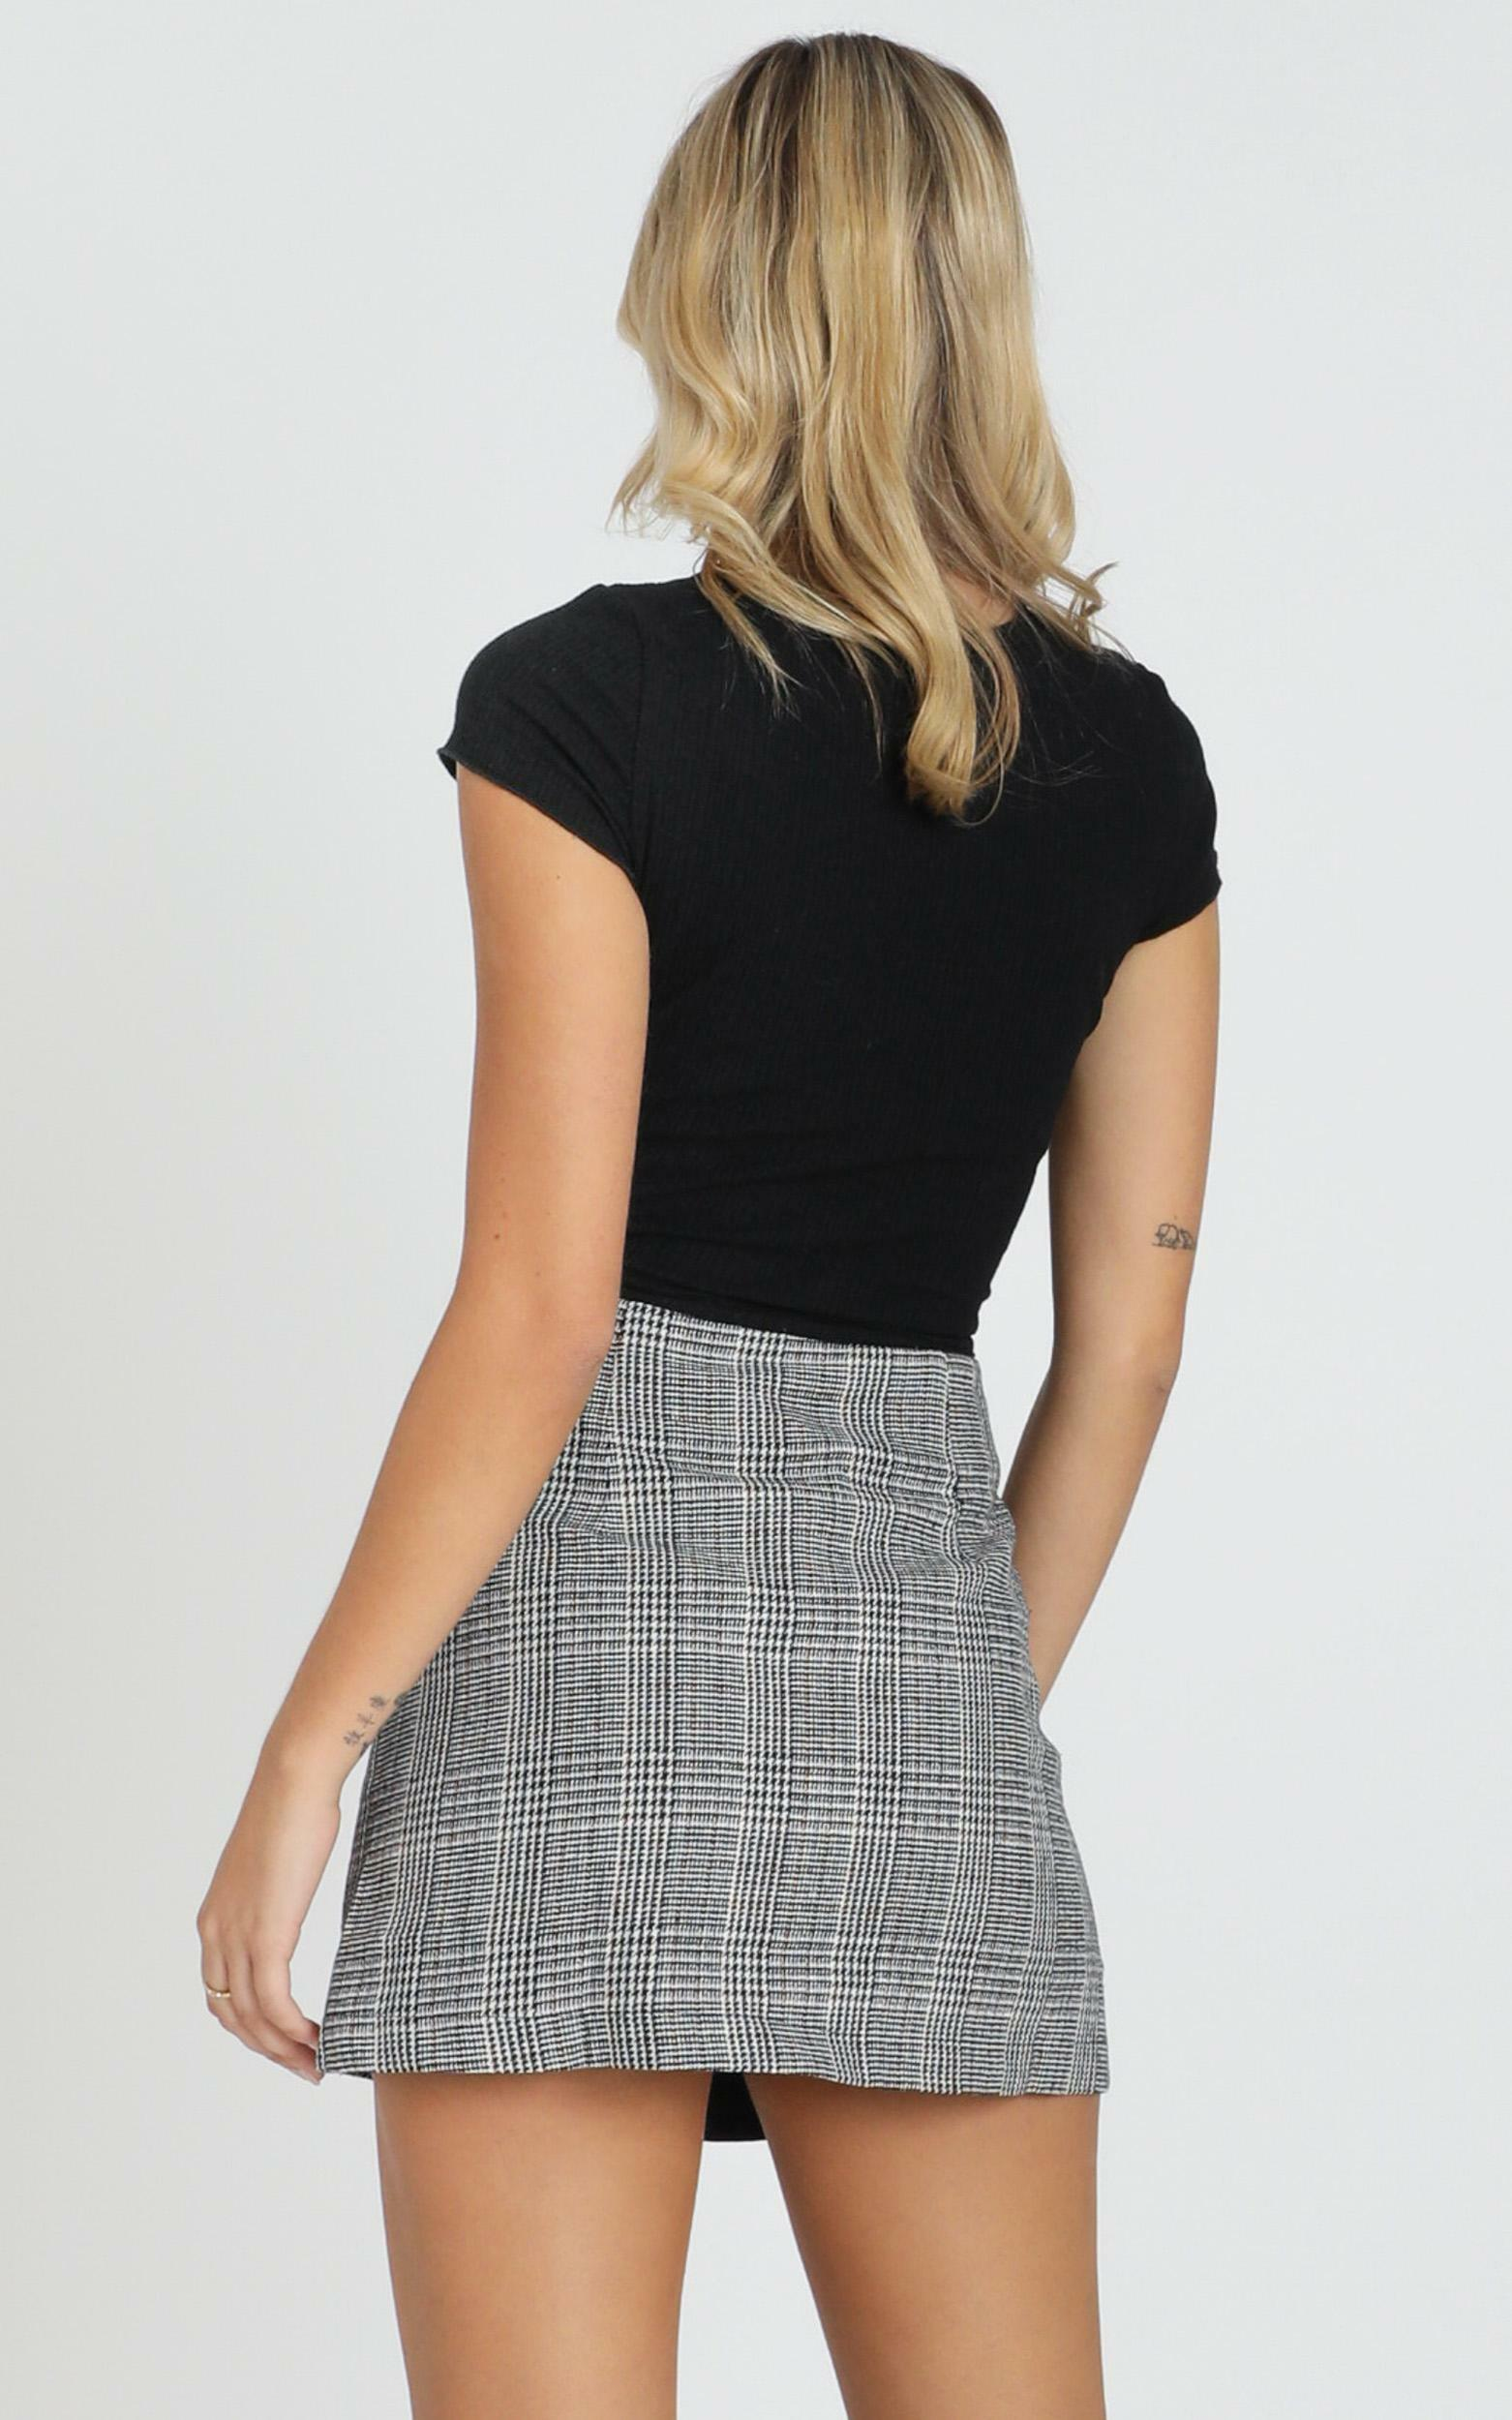 Thoughts Of You Skirt In Black Check - 4 (XXS), BLK1, hi-res image number null